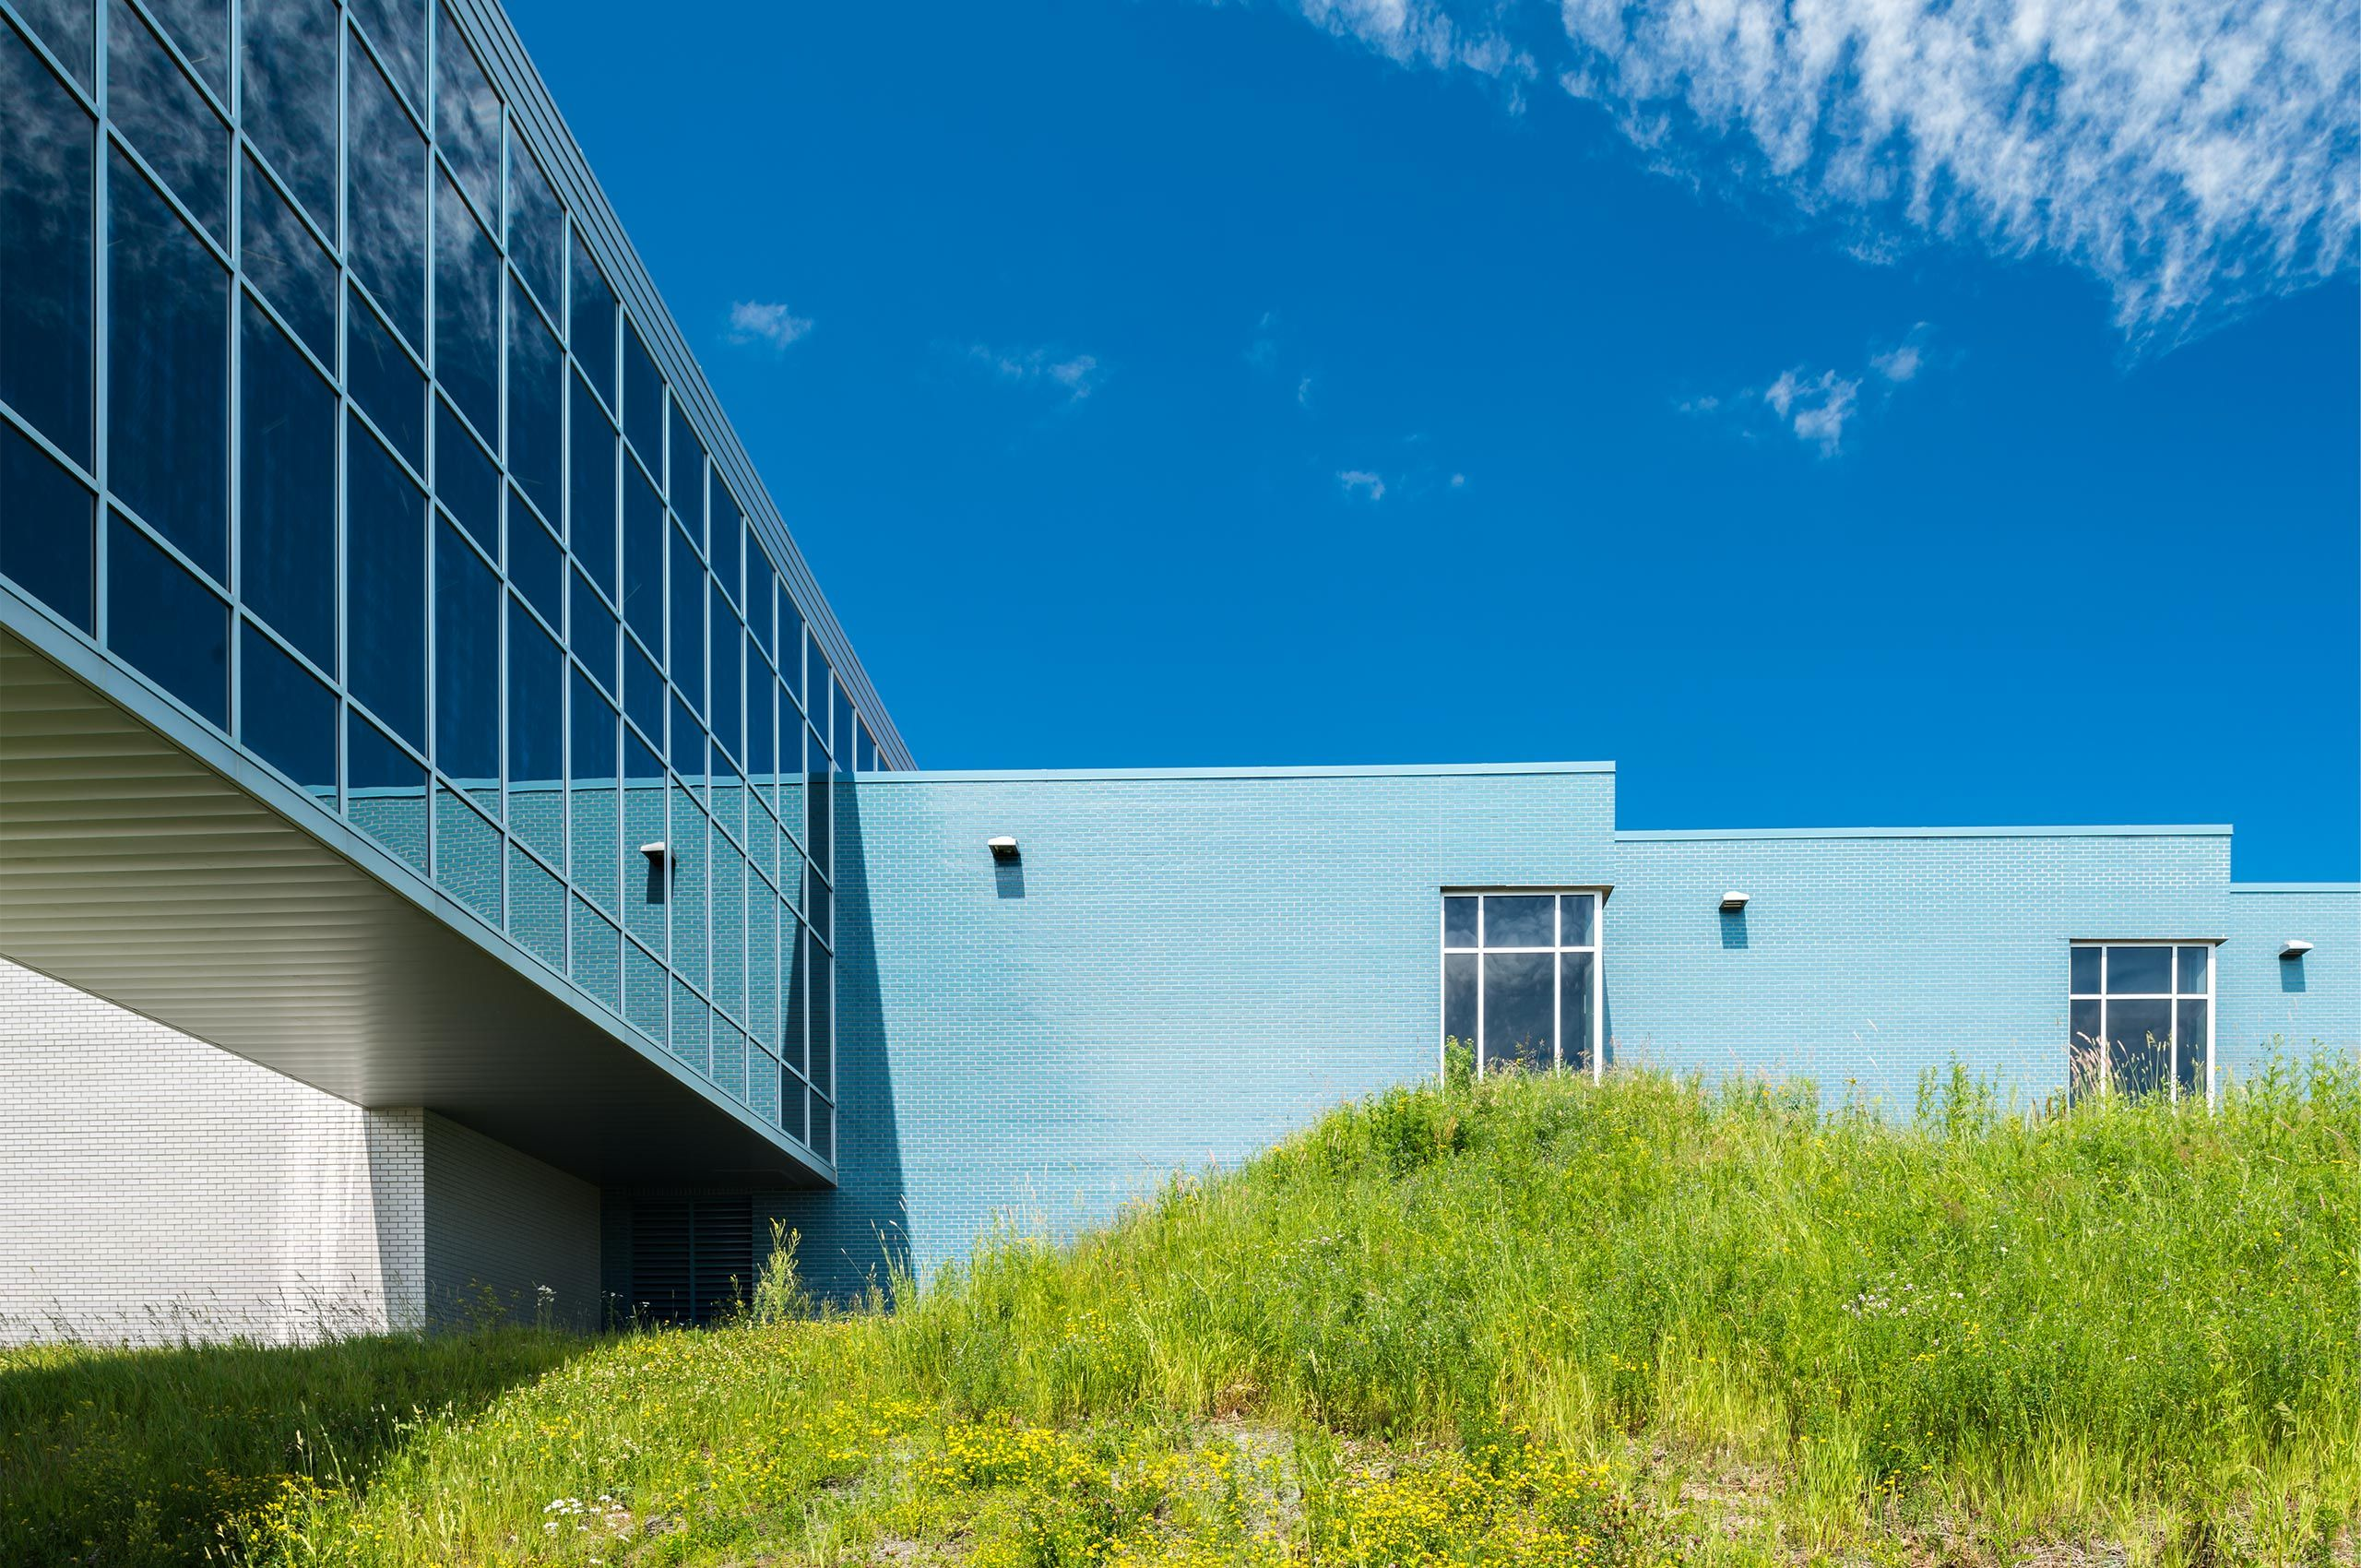 LAKE SUPERIOR COLLEGE HEALTH AND SCIENCE CENTER